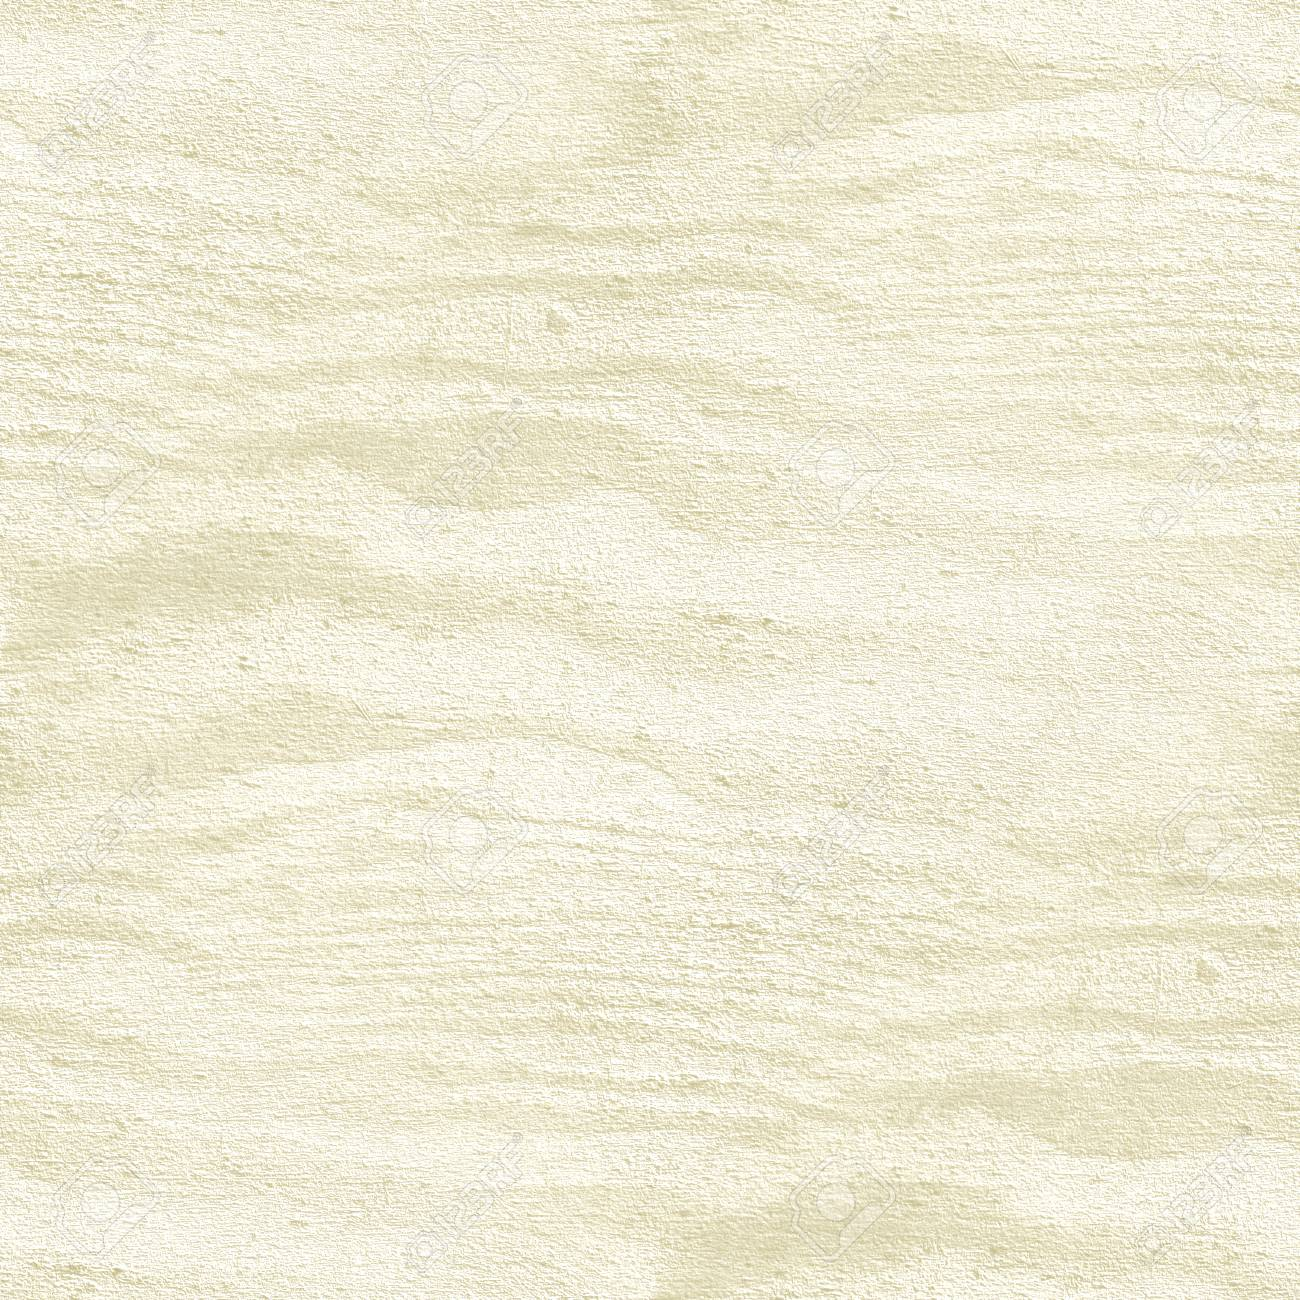 White Wood Texture Seamless Vintage Pattern Stock Photo Picture